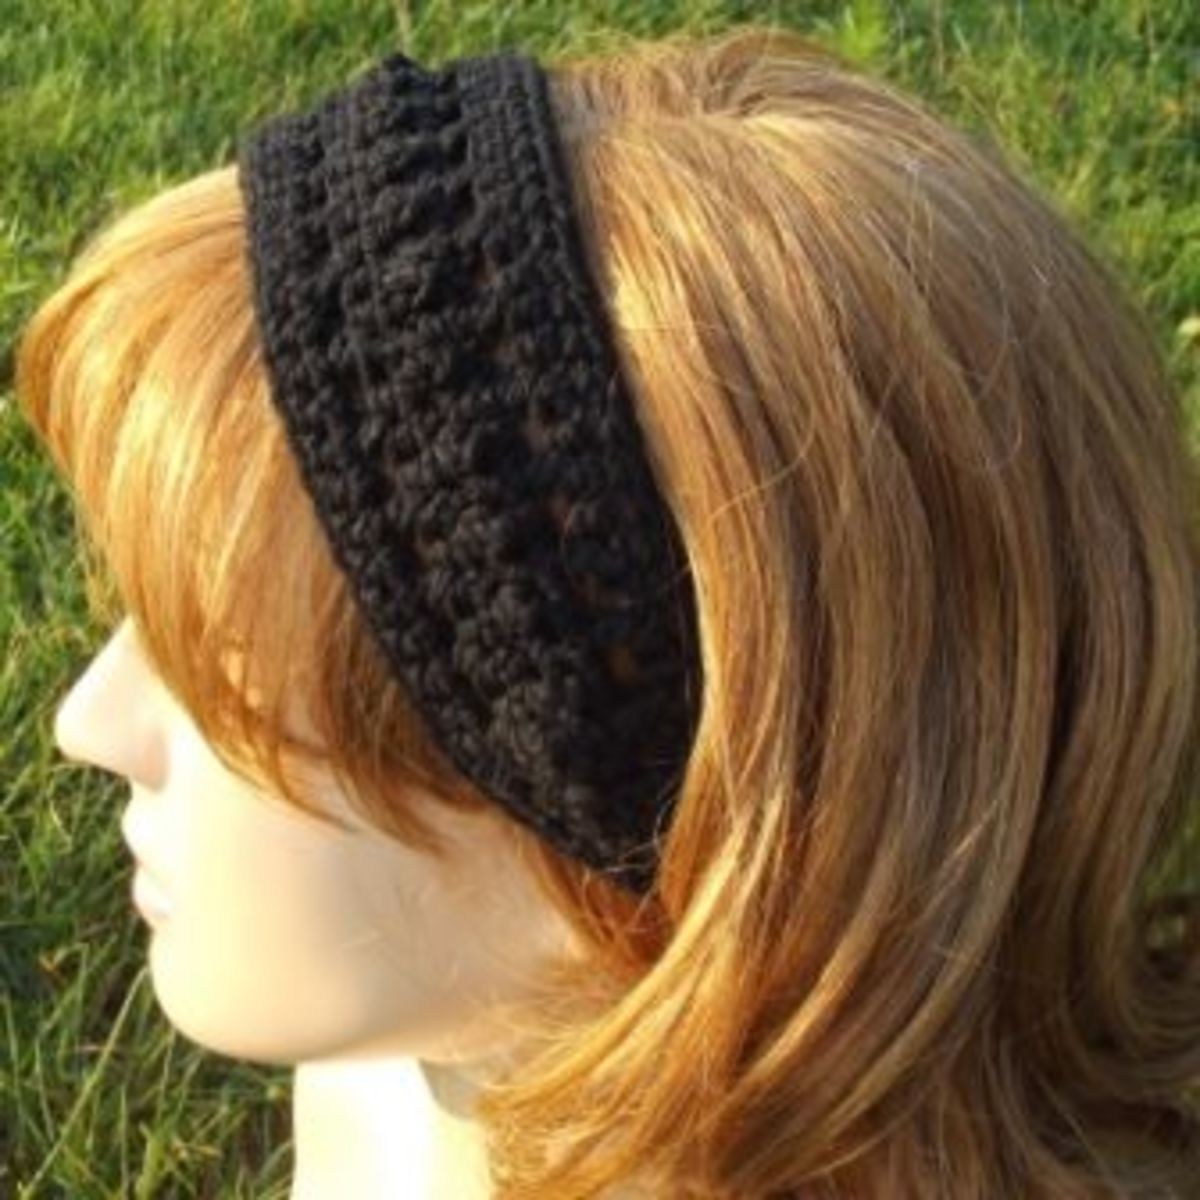 Crocheted black headband.